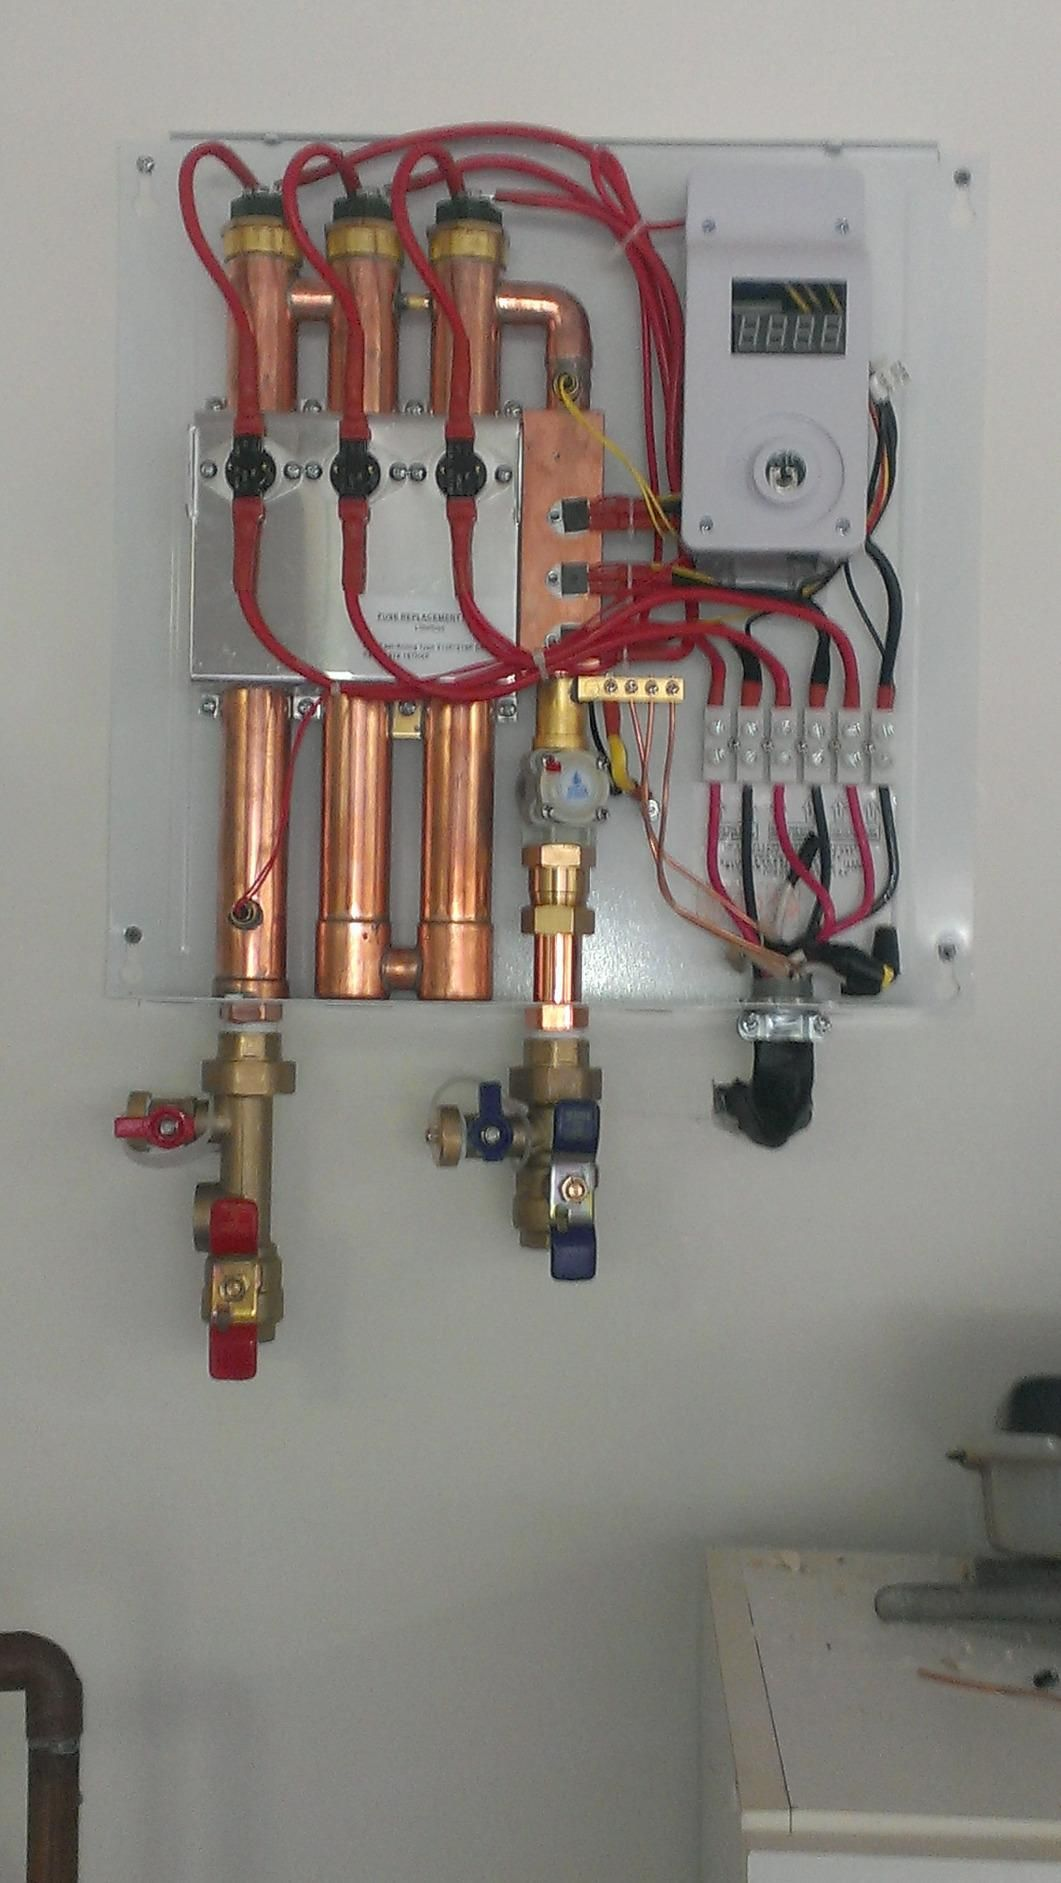 Best Electric Tankless Water Heater Reviews In 2020 Tankless Water Heater Water Heater Water Heating Systems